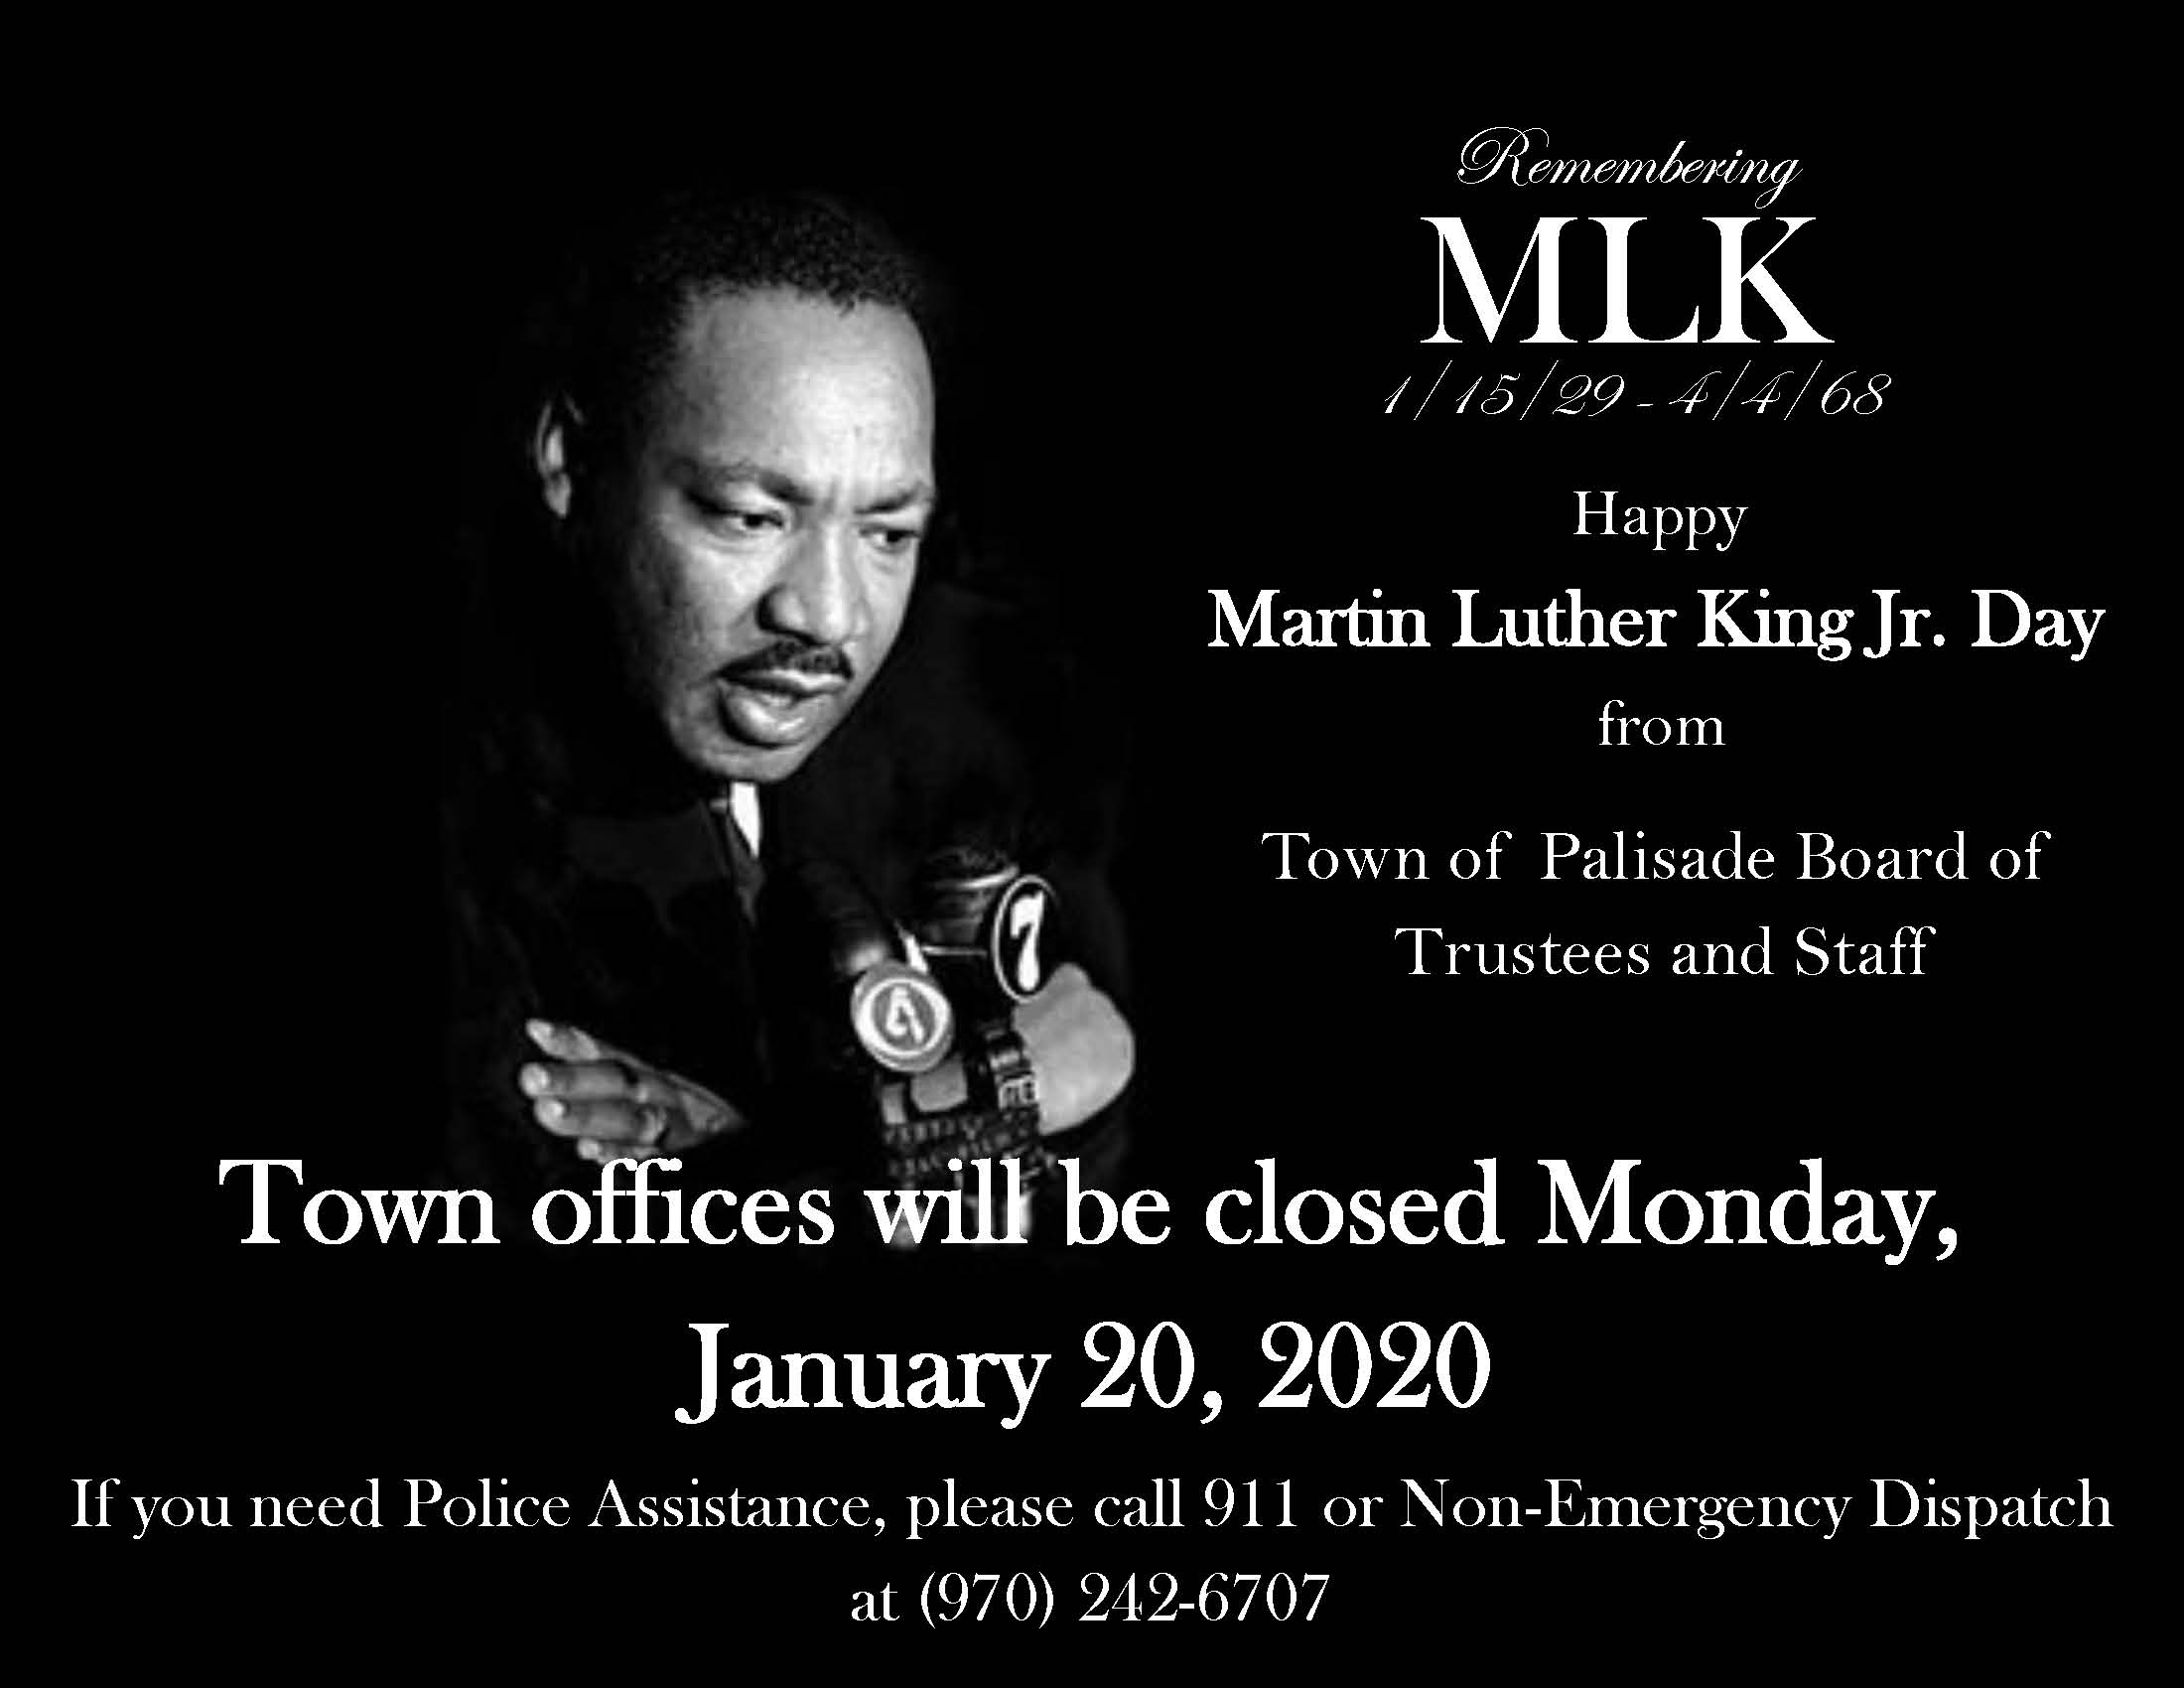 Closed for MLK Day